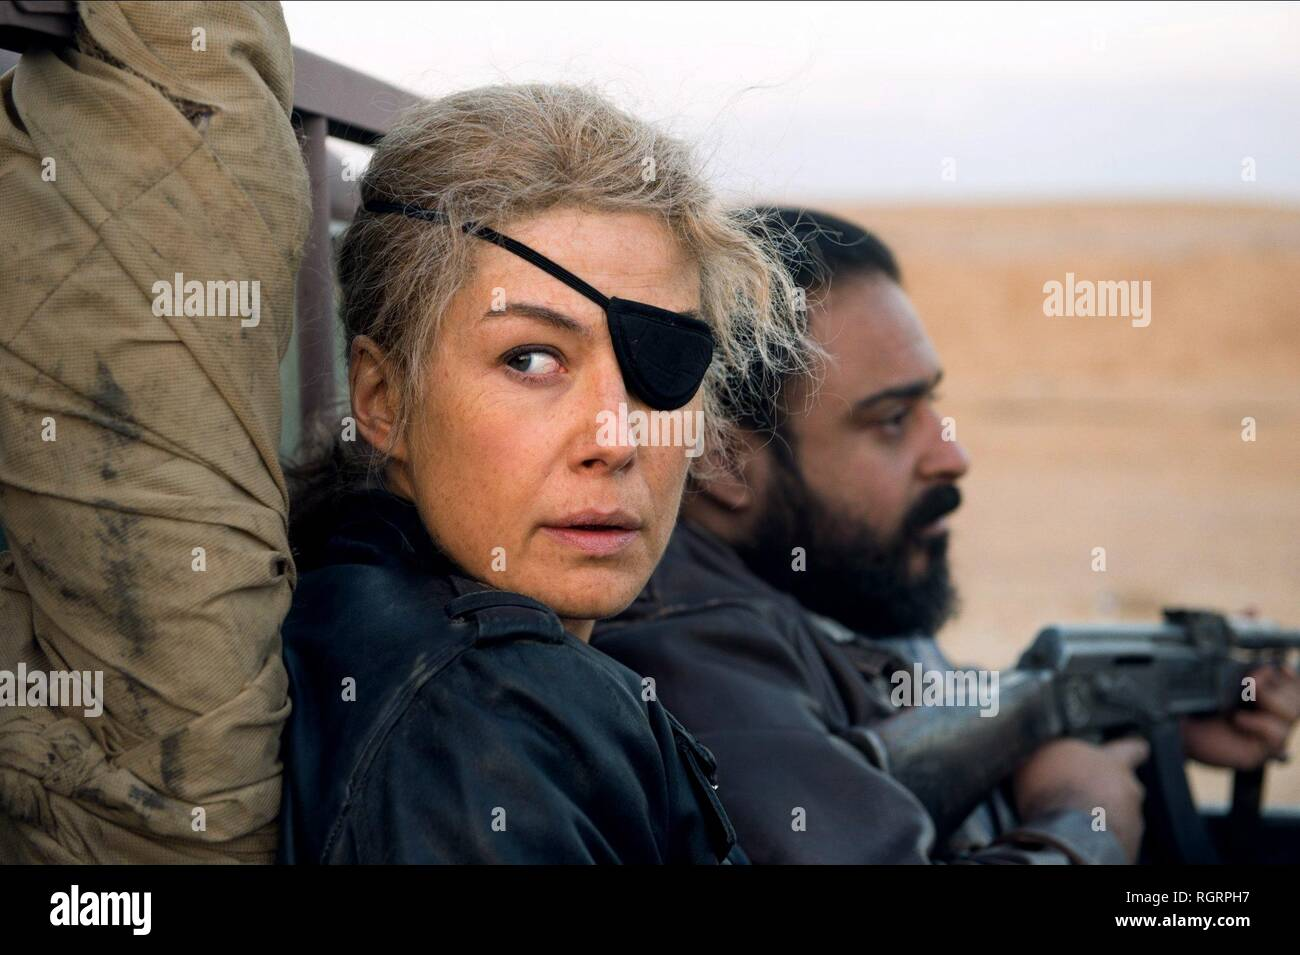 A PRIVATE WAR, ROSAMUND PIKE, 2018 - Stock Image